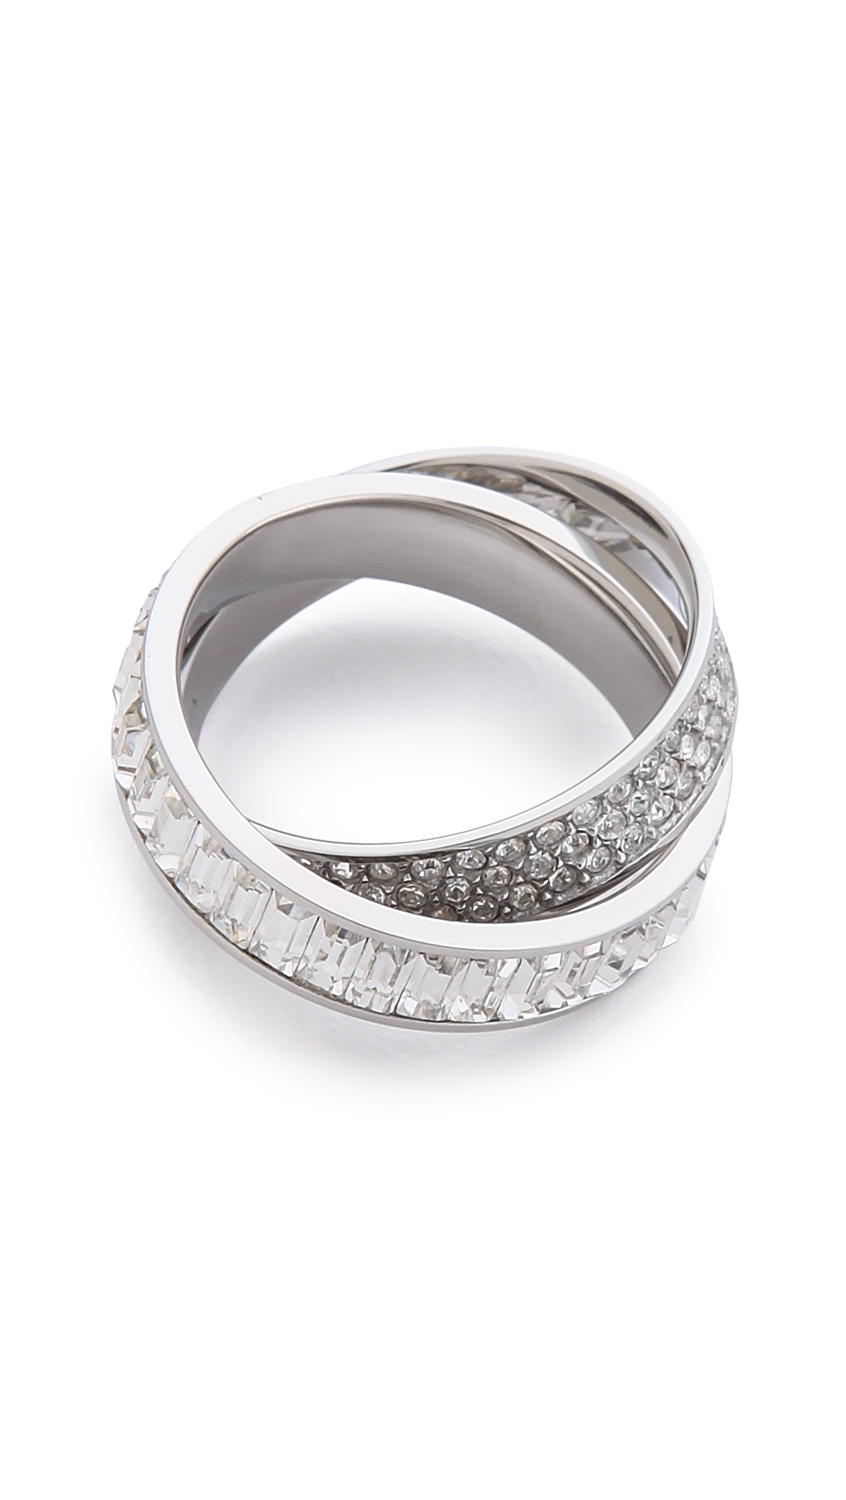 Michael Kors Intertwined Ring